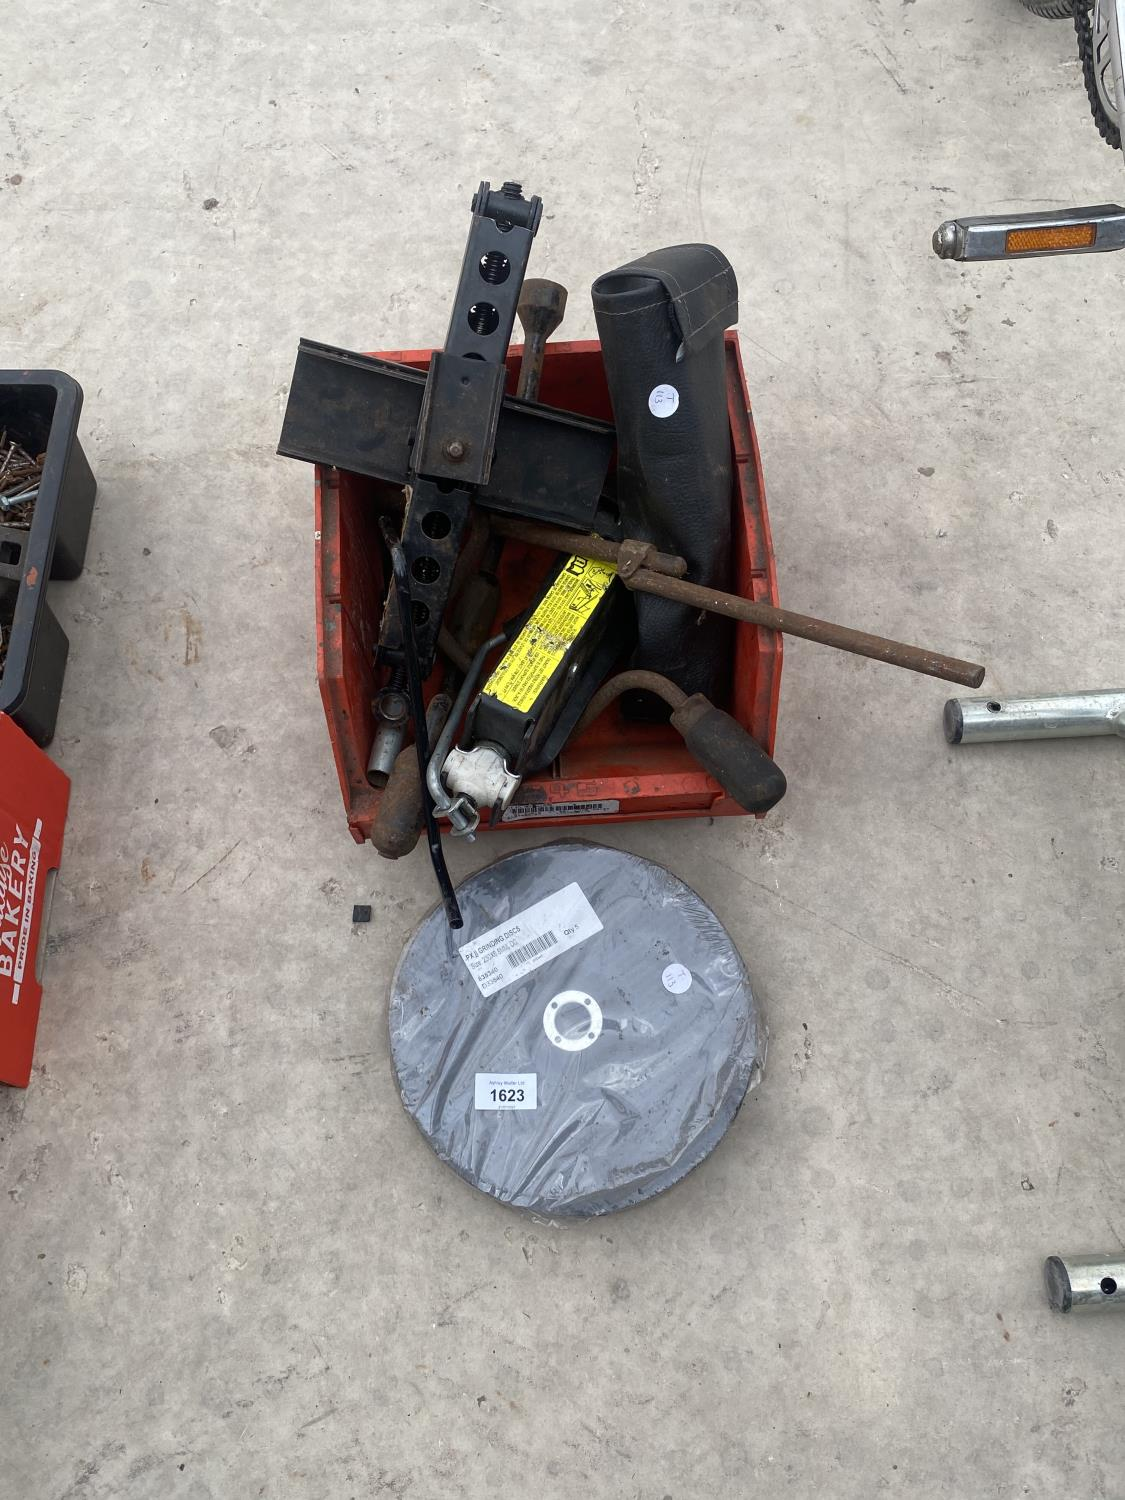 CAR TROLLEY JACKS AND AN ASSORTMENT OF CUTTING DISCS